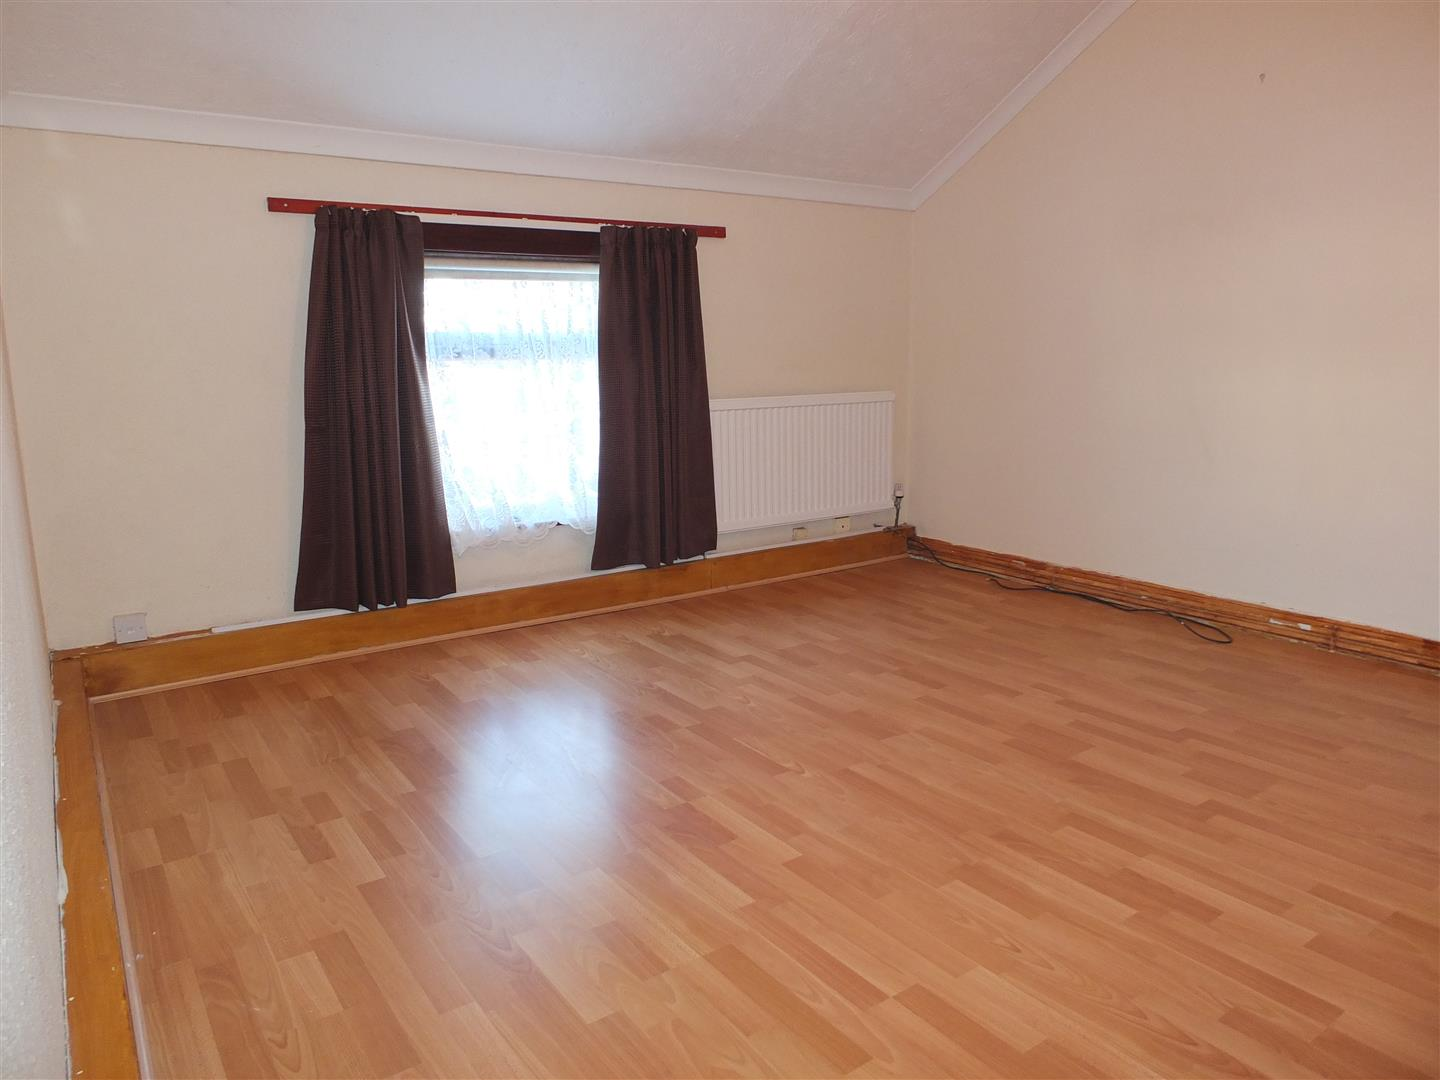 3 bed house to rent in Sutton Bridge Spalding, PE12 9UJ  - Property Image 6